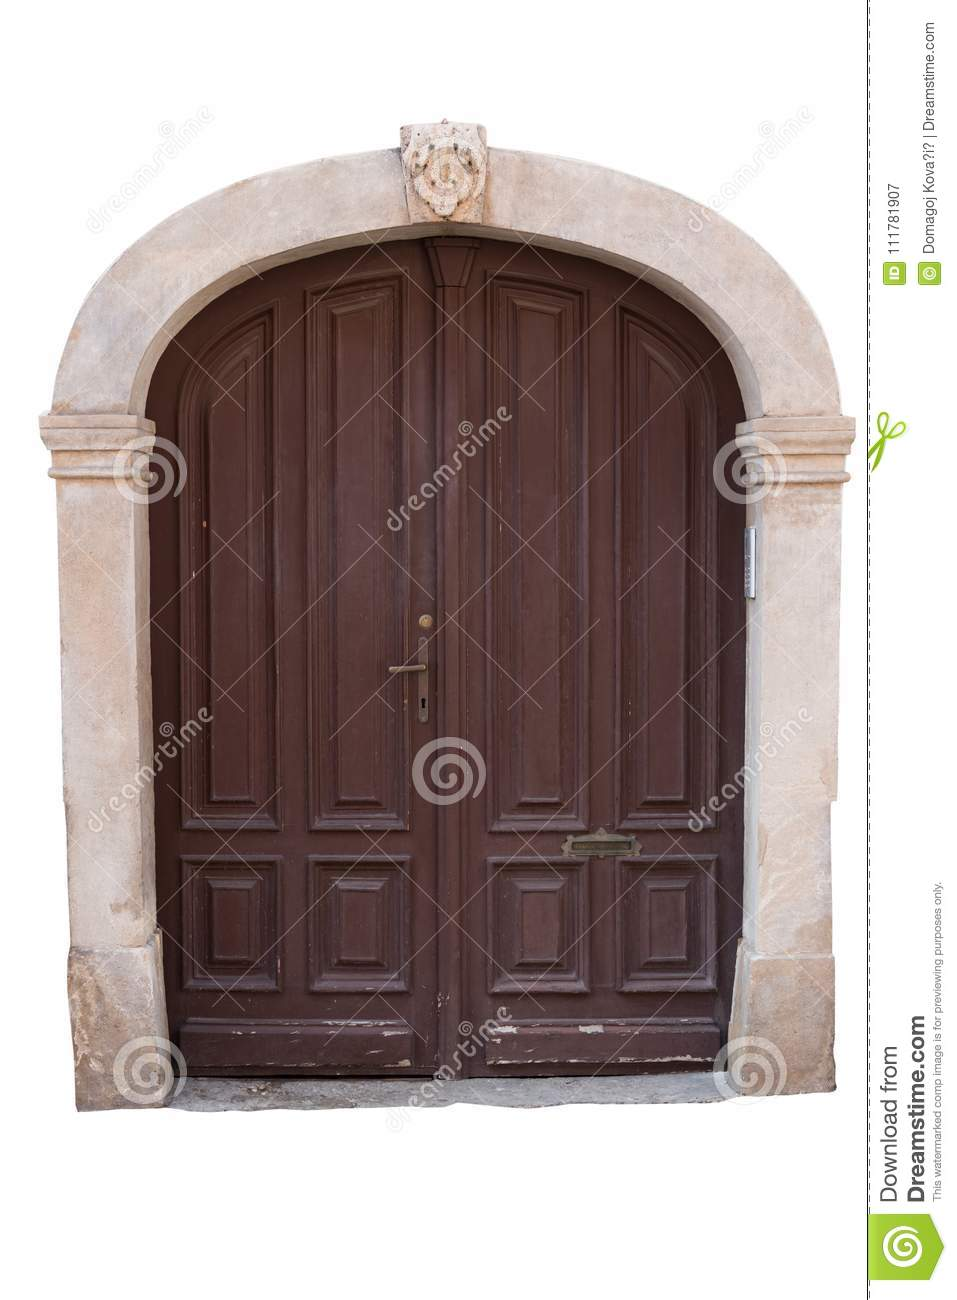 Old wooden doors with stone frame isolated on white background. Clipping path